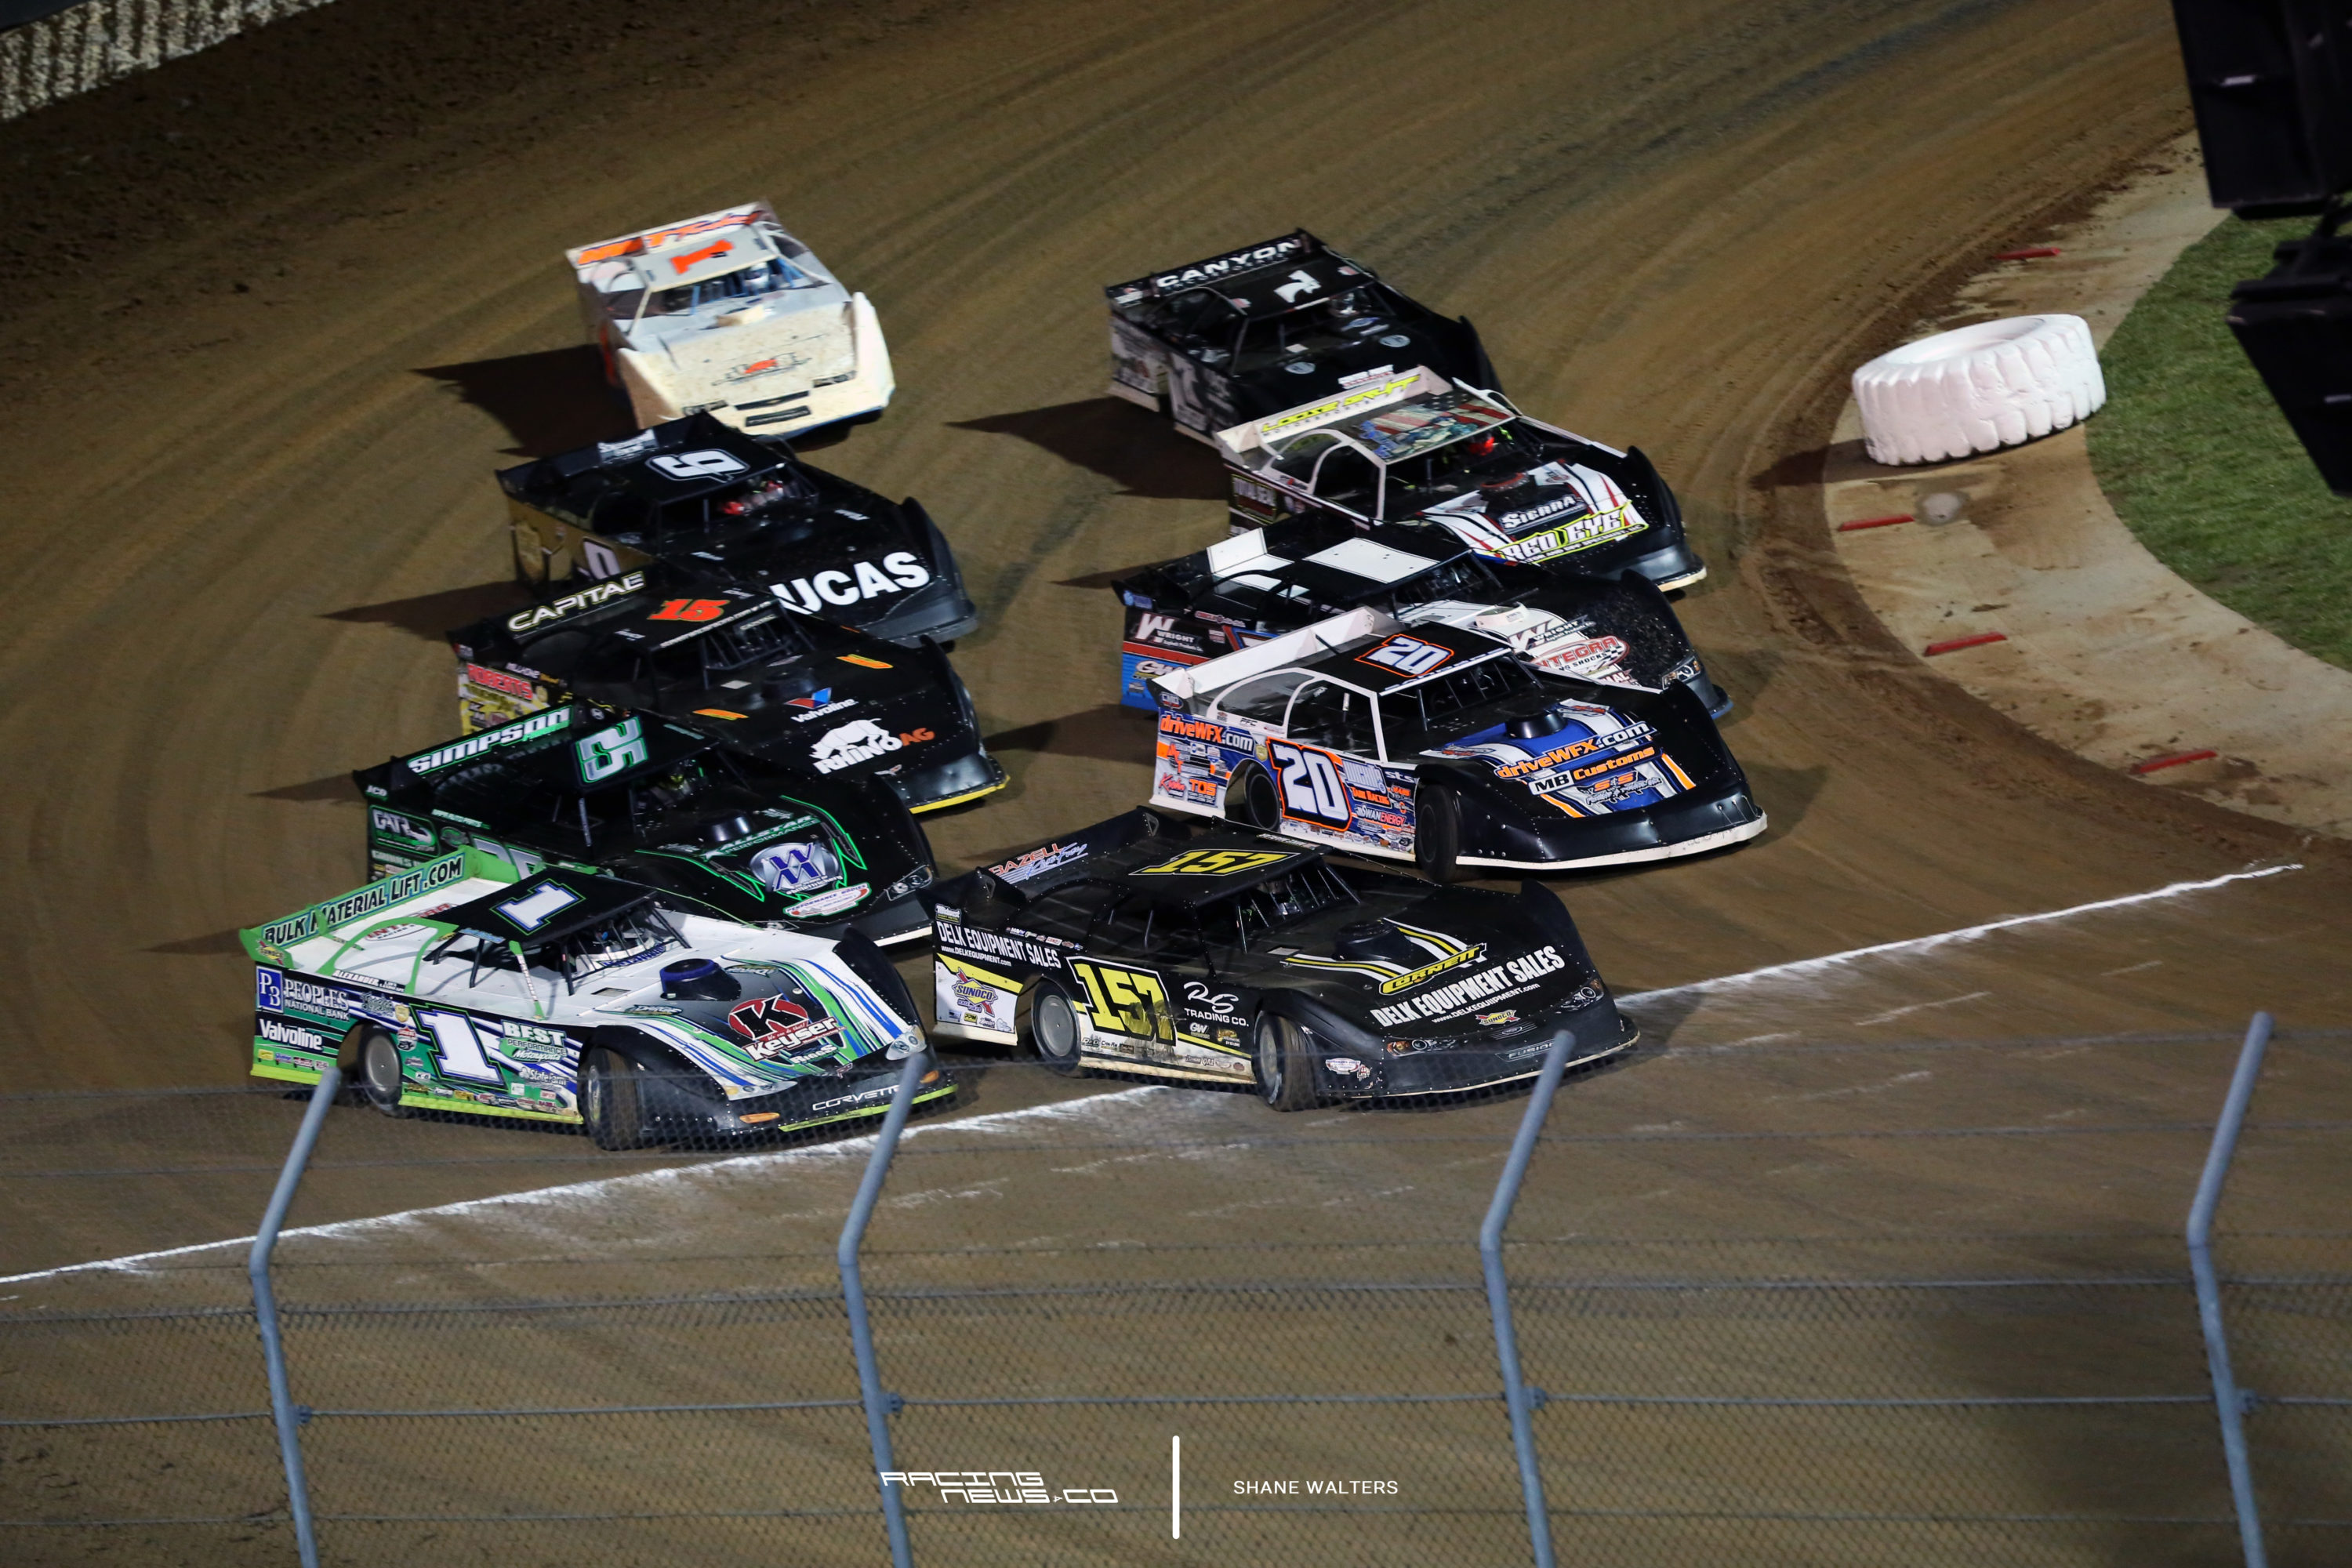 The Lucas Oil Late Model Dirt Series Invades Ohio